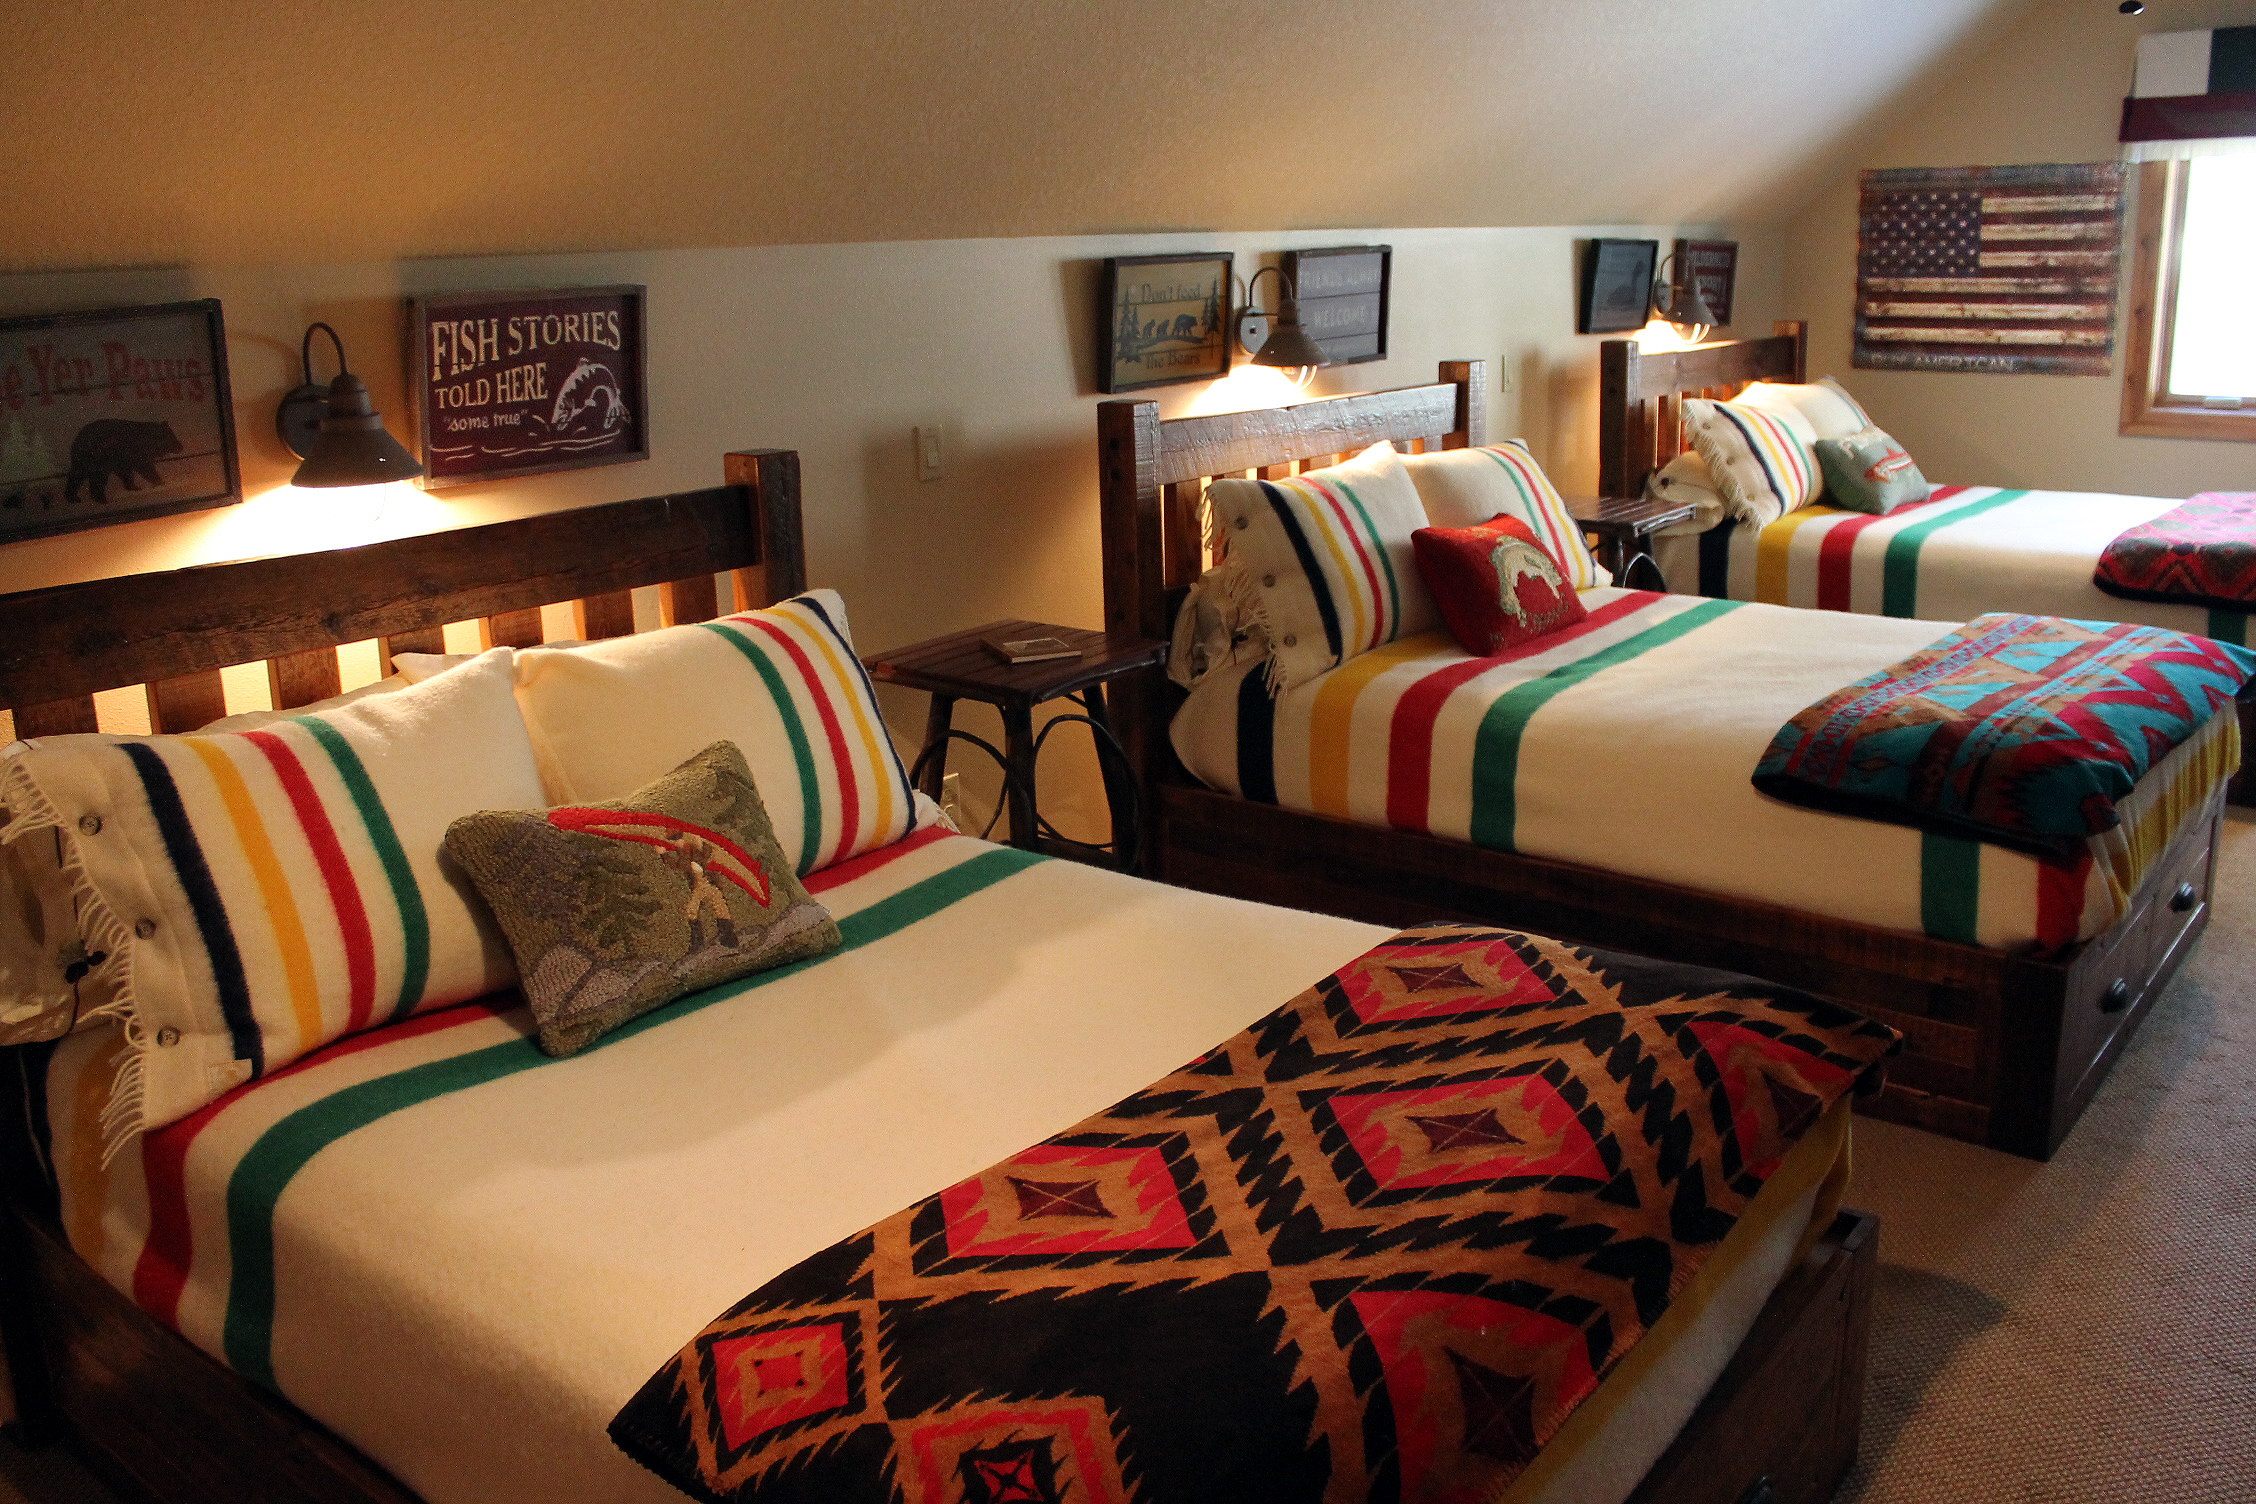 cabin bedroom decorating ideas chic cabins to inspire your dream bedroom roughing it in style. Interior Design Ideas. Home Design Ideas